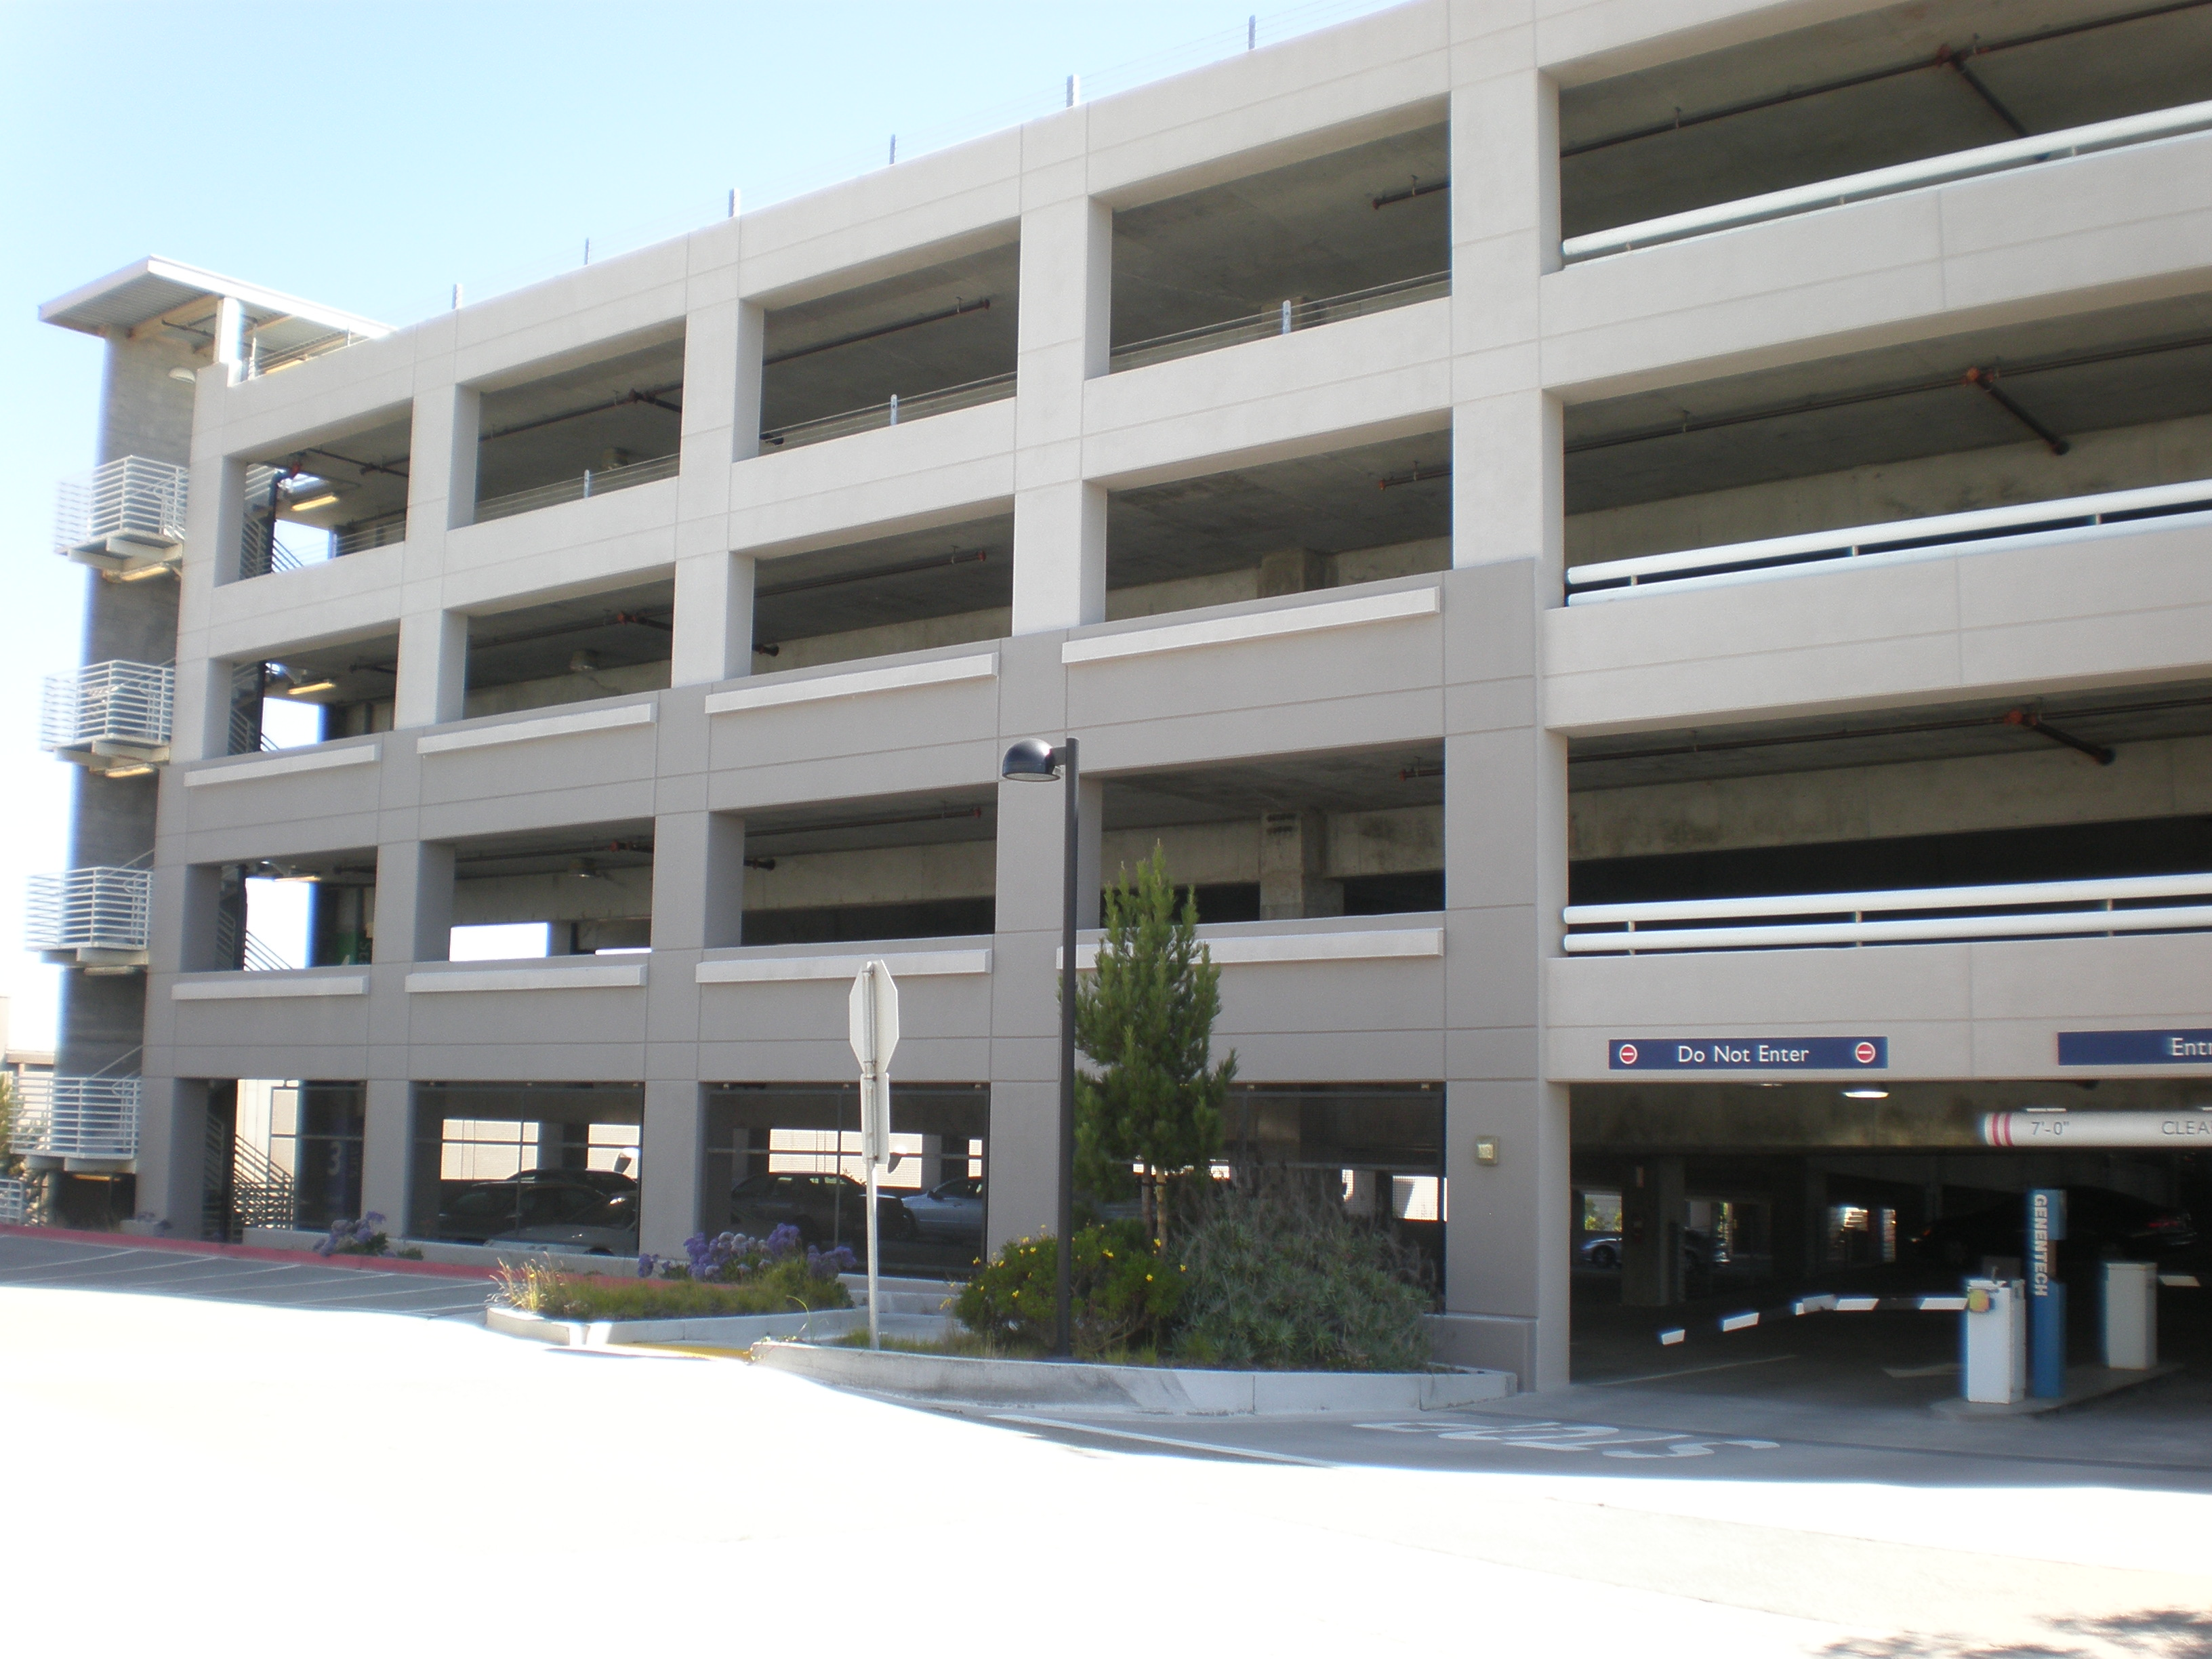 Whatever parking facility you manage, we have the right equipment to keep it looking its best!